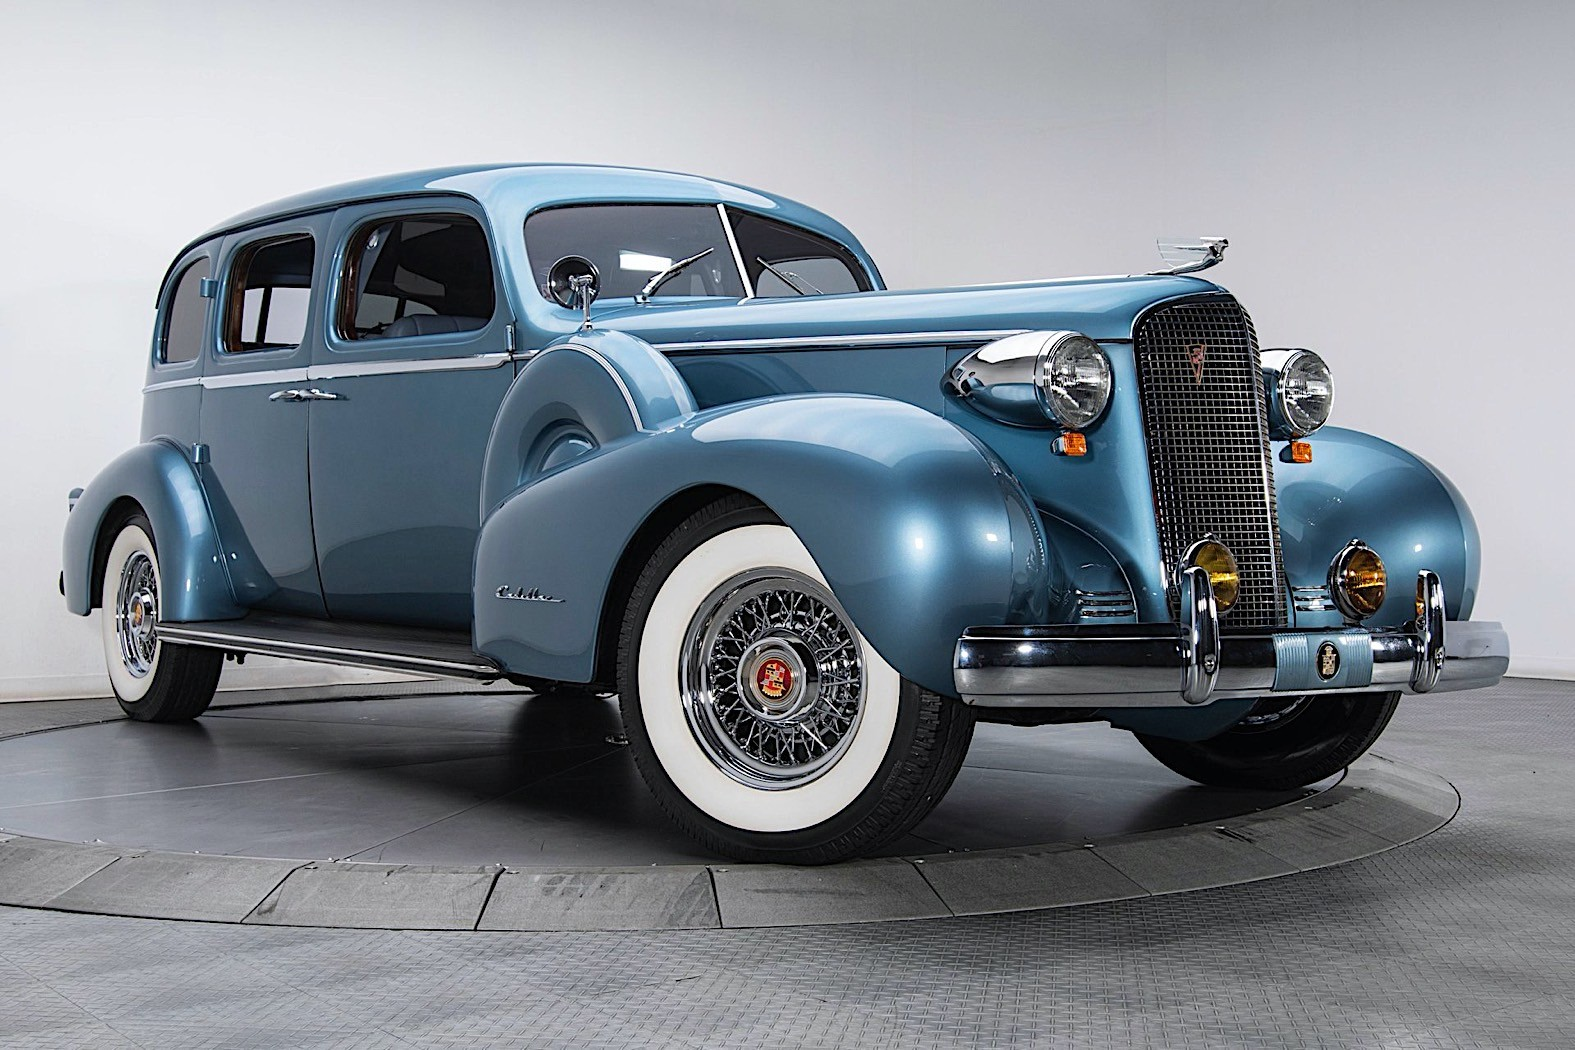 Custom 1937 Cadillac Took 3,000 Hours to Remake, Worth ...